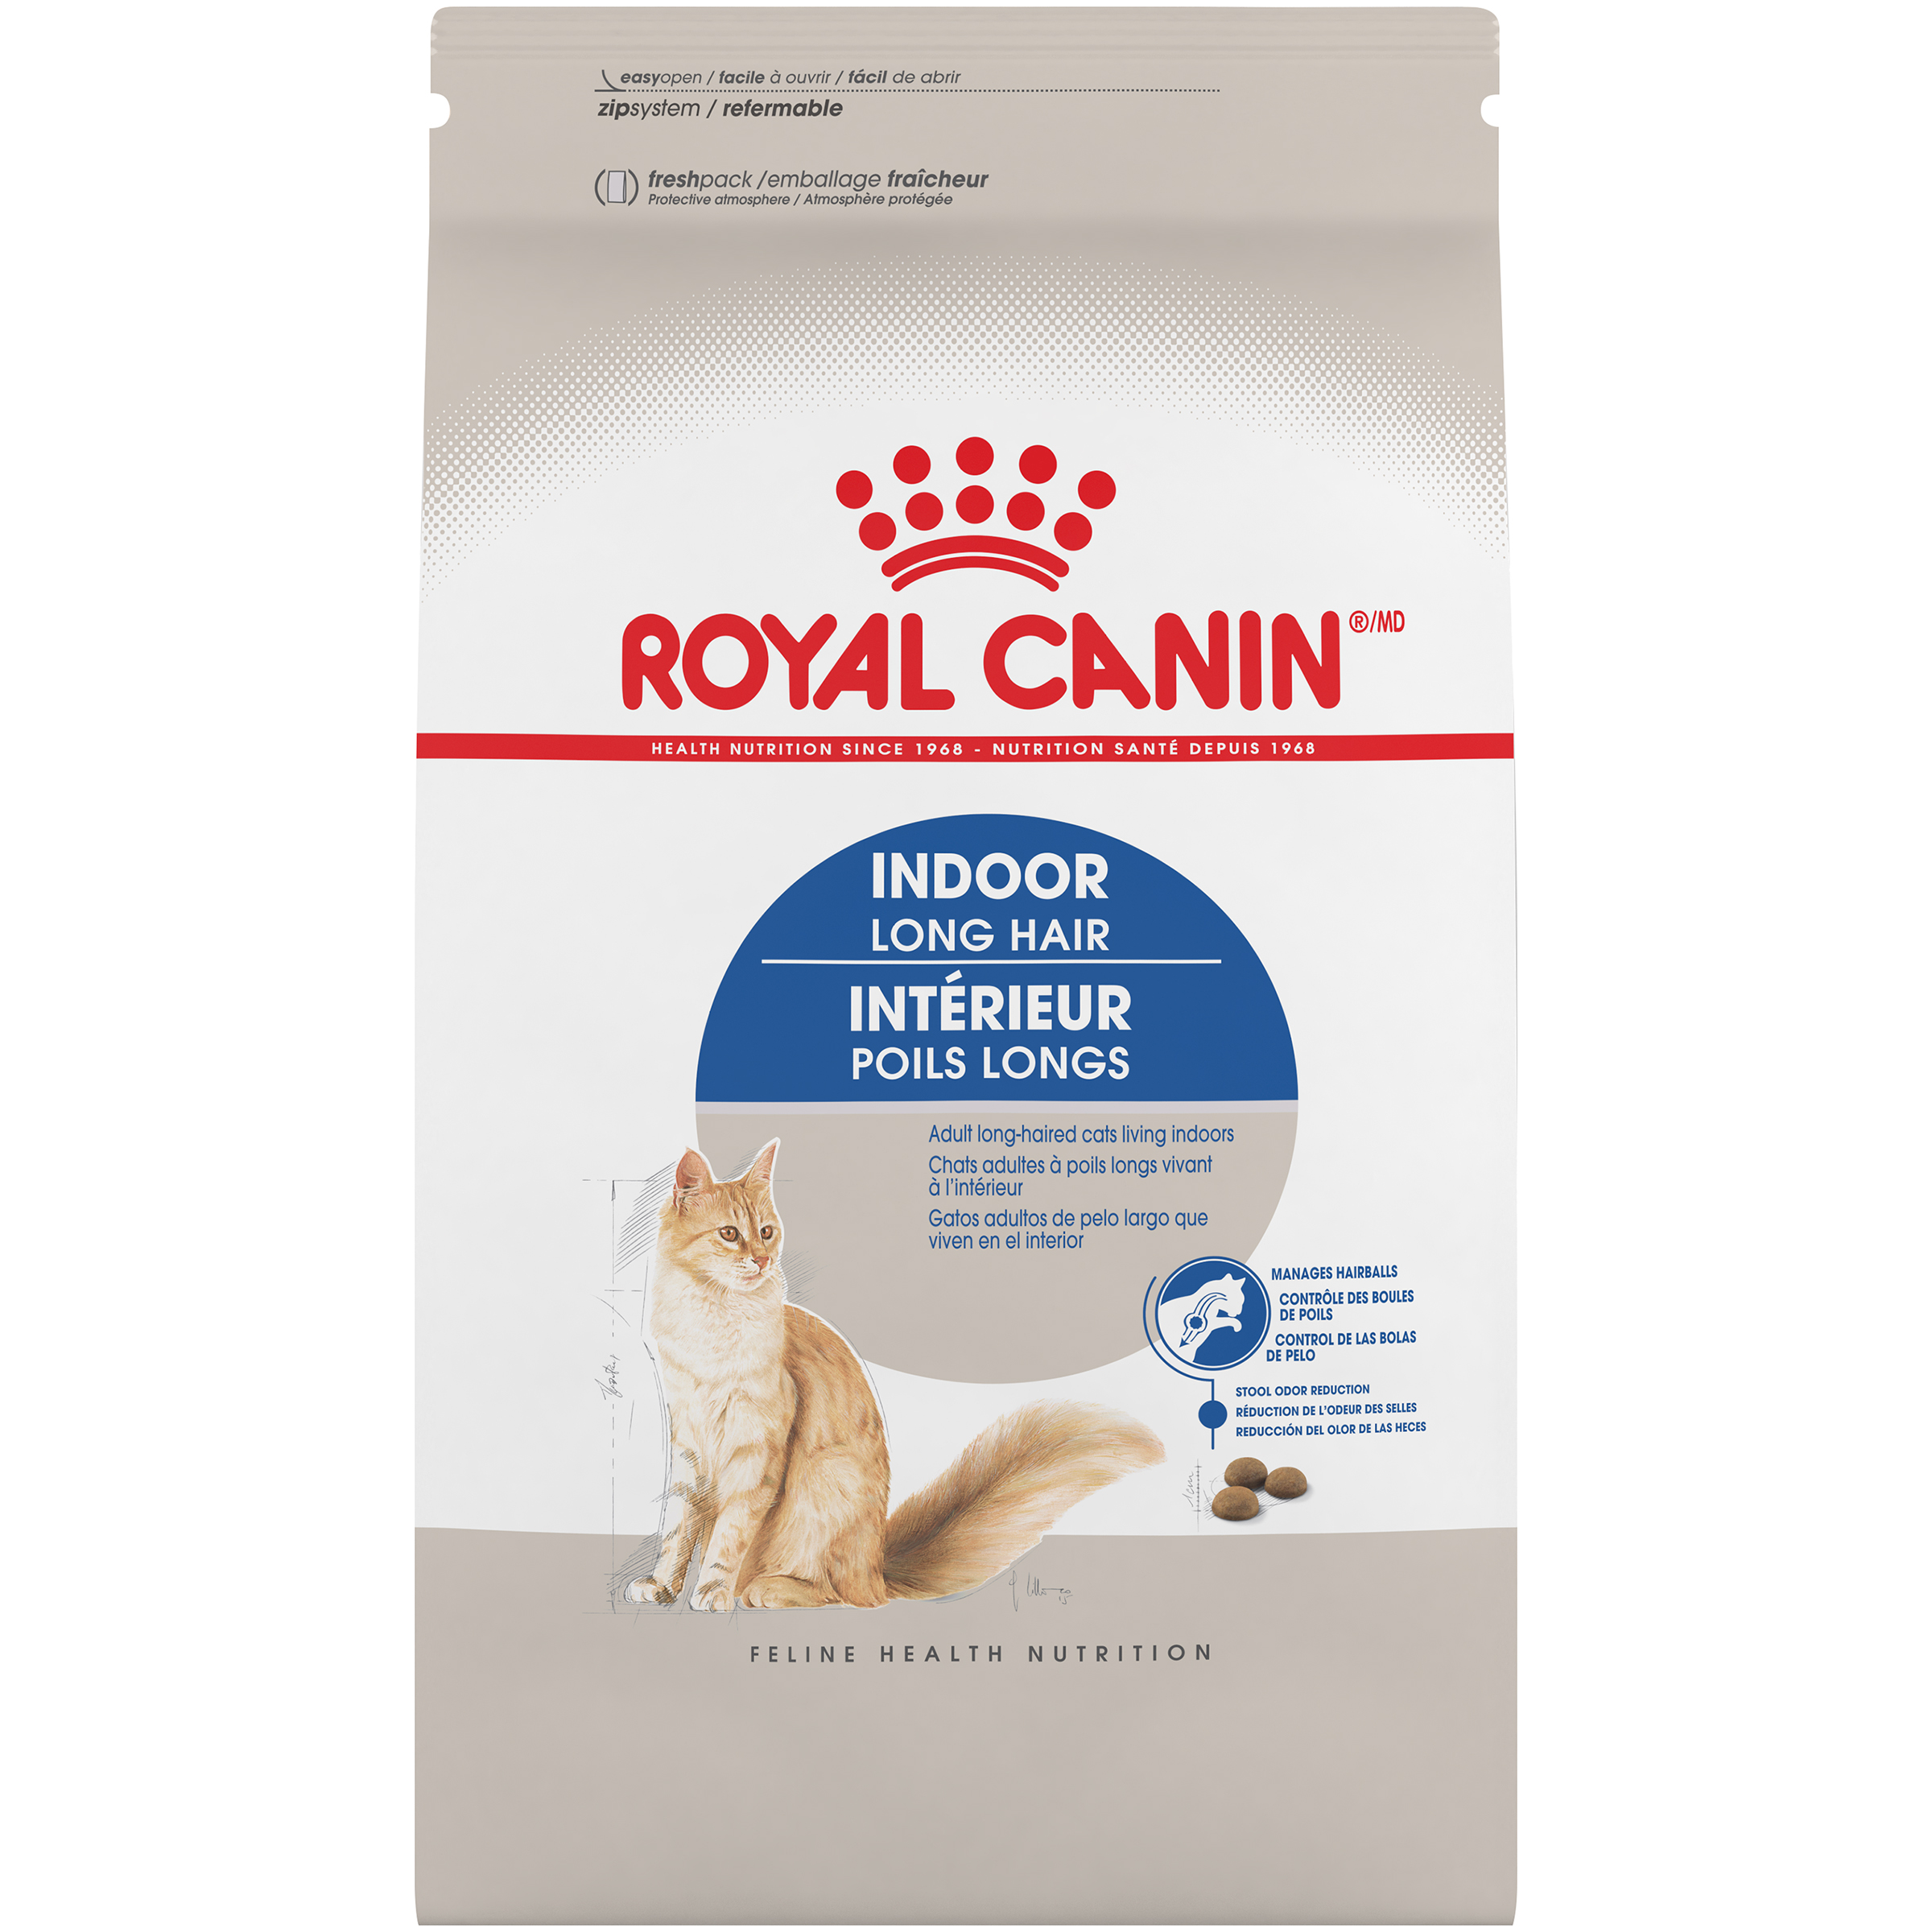 Royal Canin FHN Indoor Long Hair Adult Dry Cat Food Image